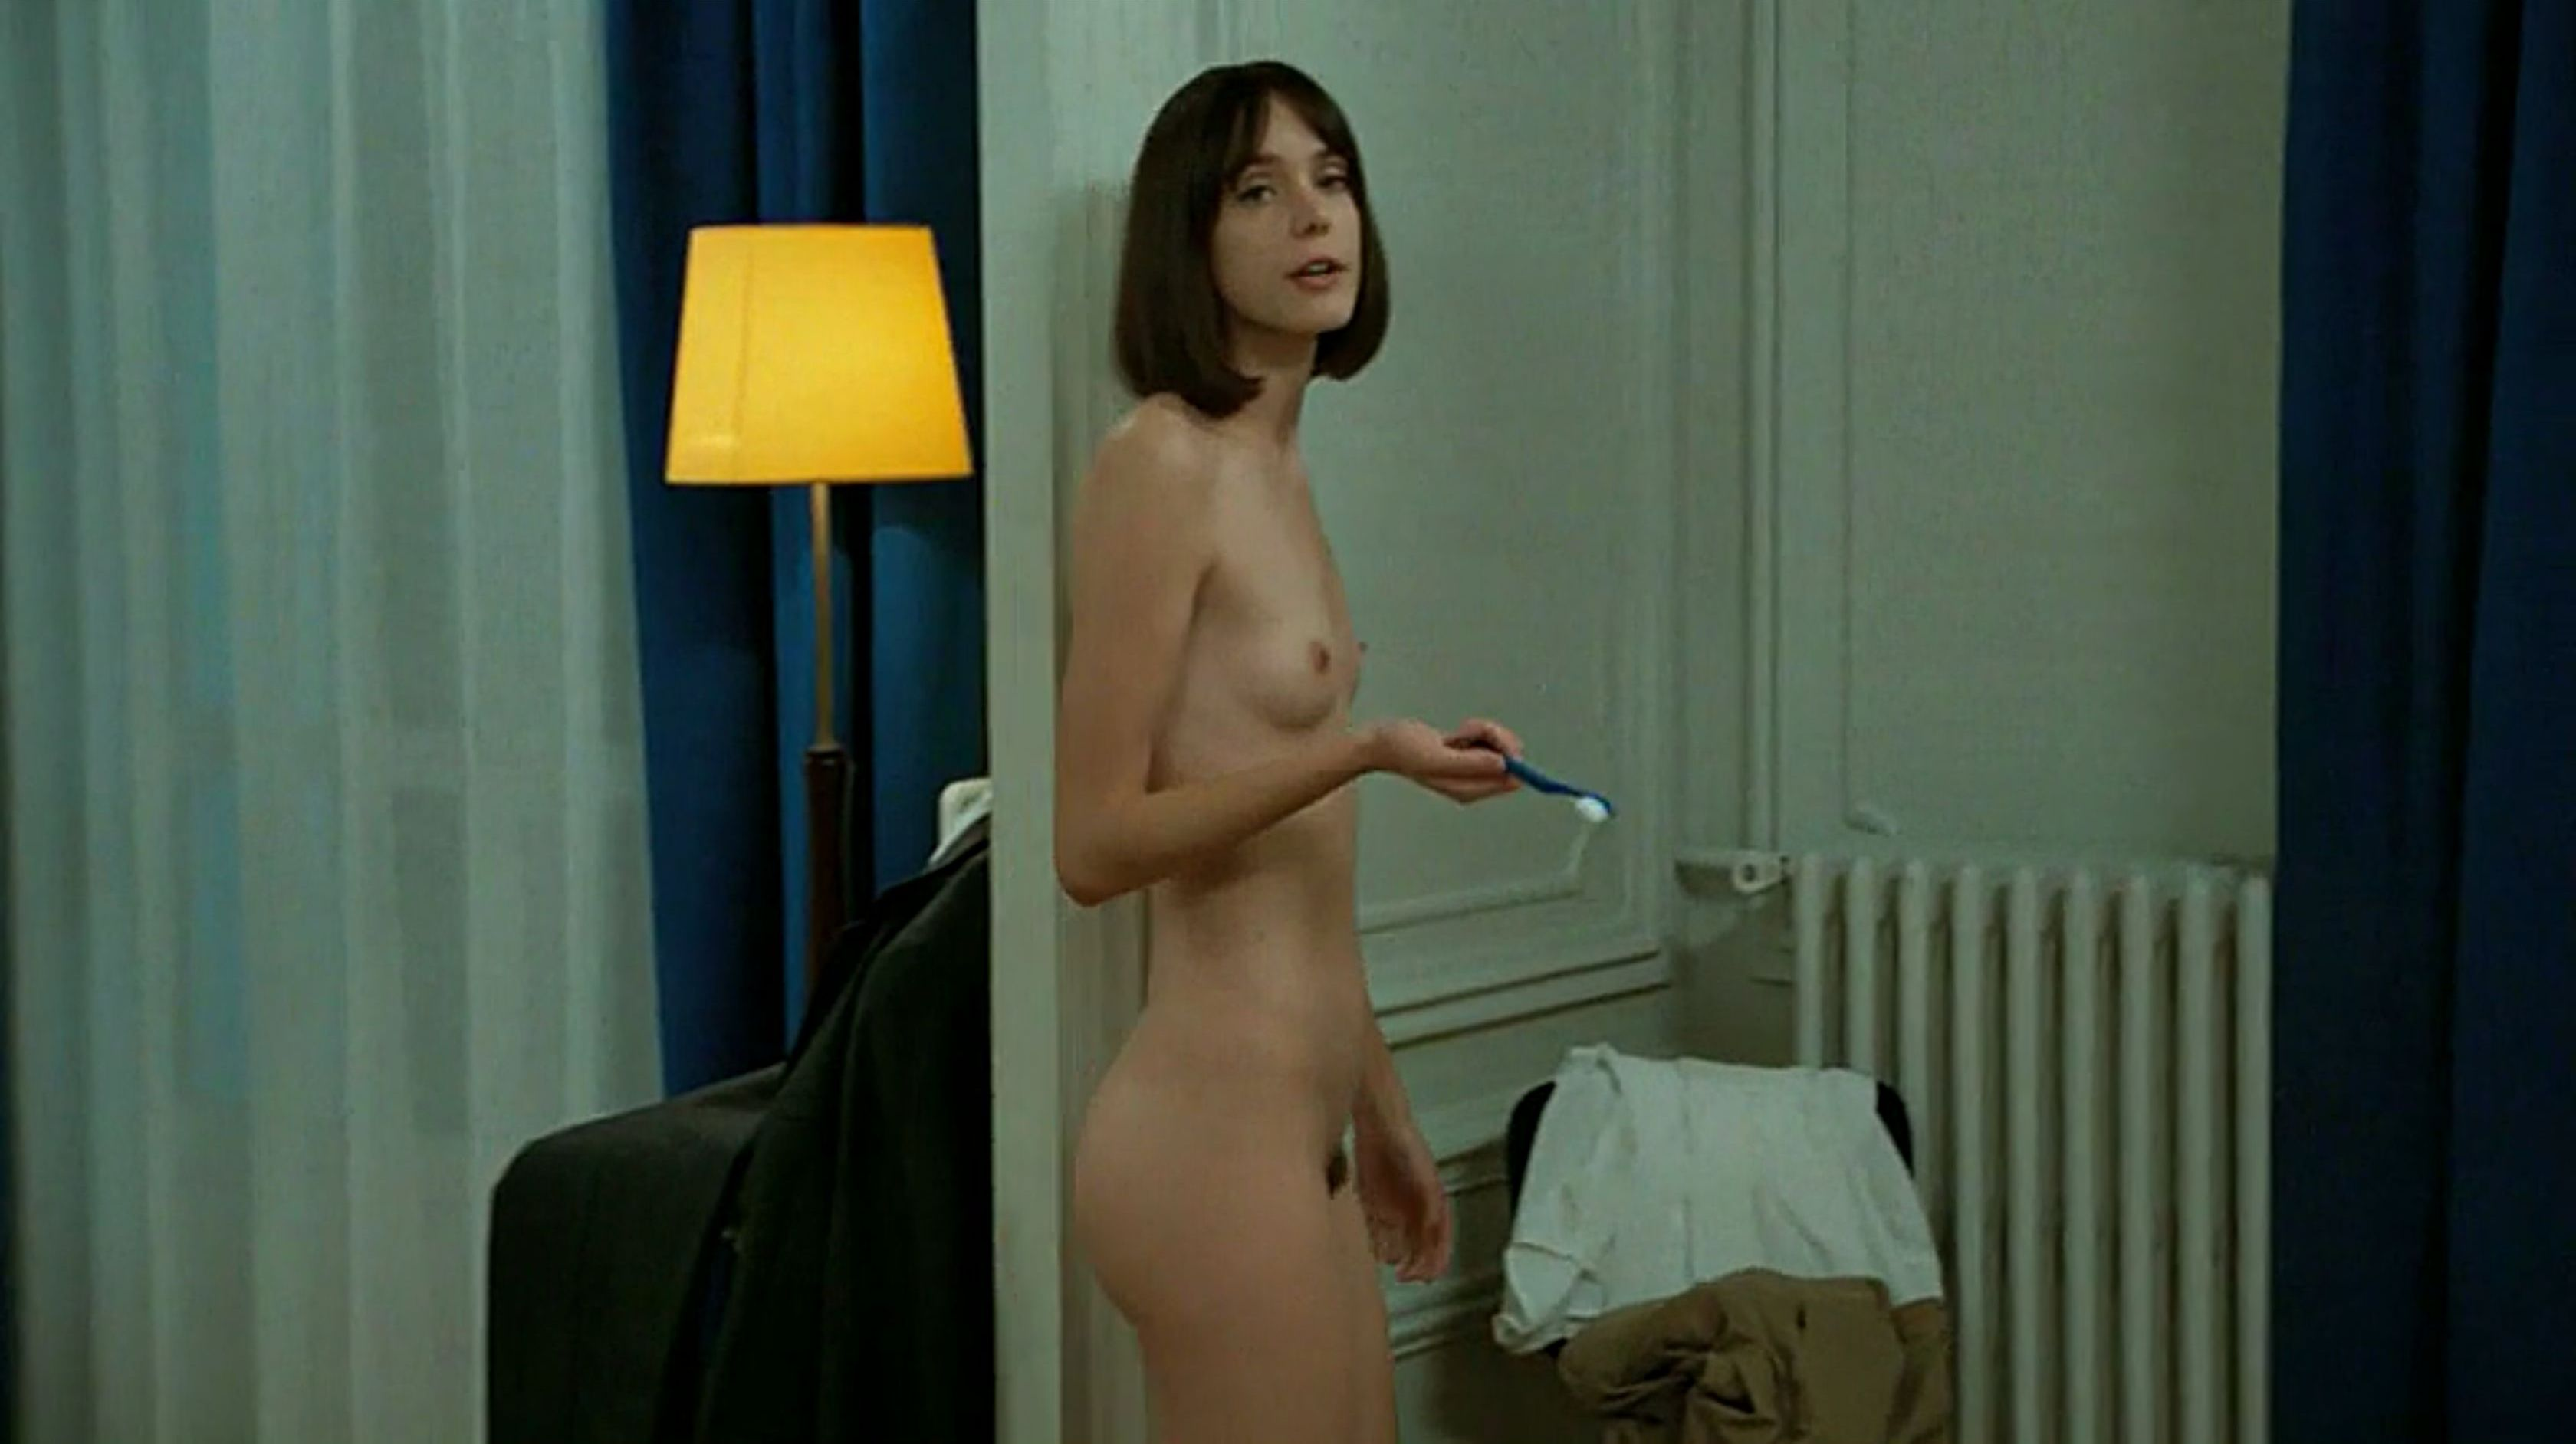 Stacy-Martin-Nude-Le-Redoutable-2017-12-The-Fappening-Blog.jpg